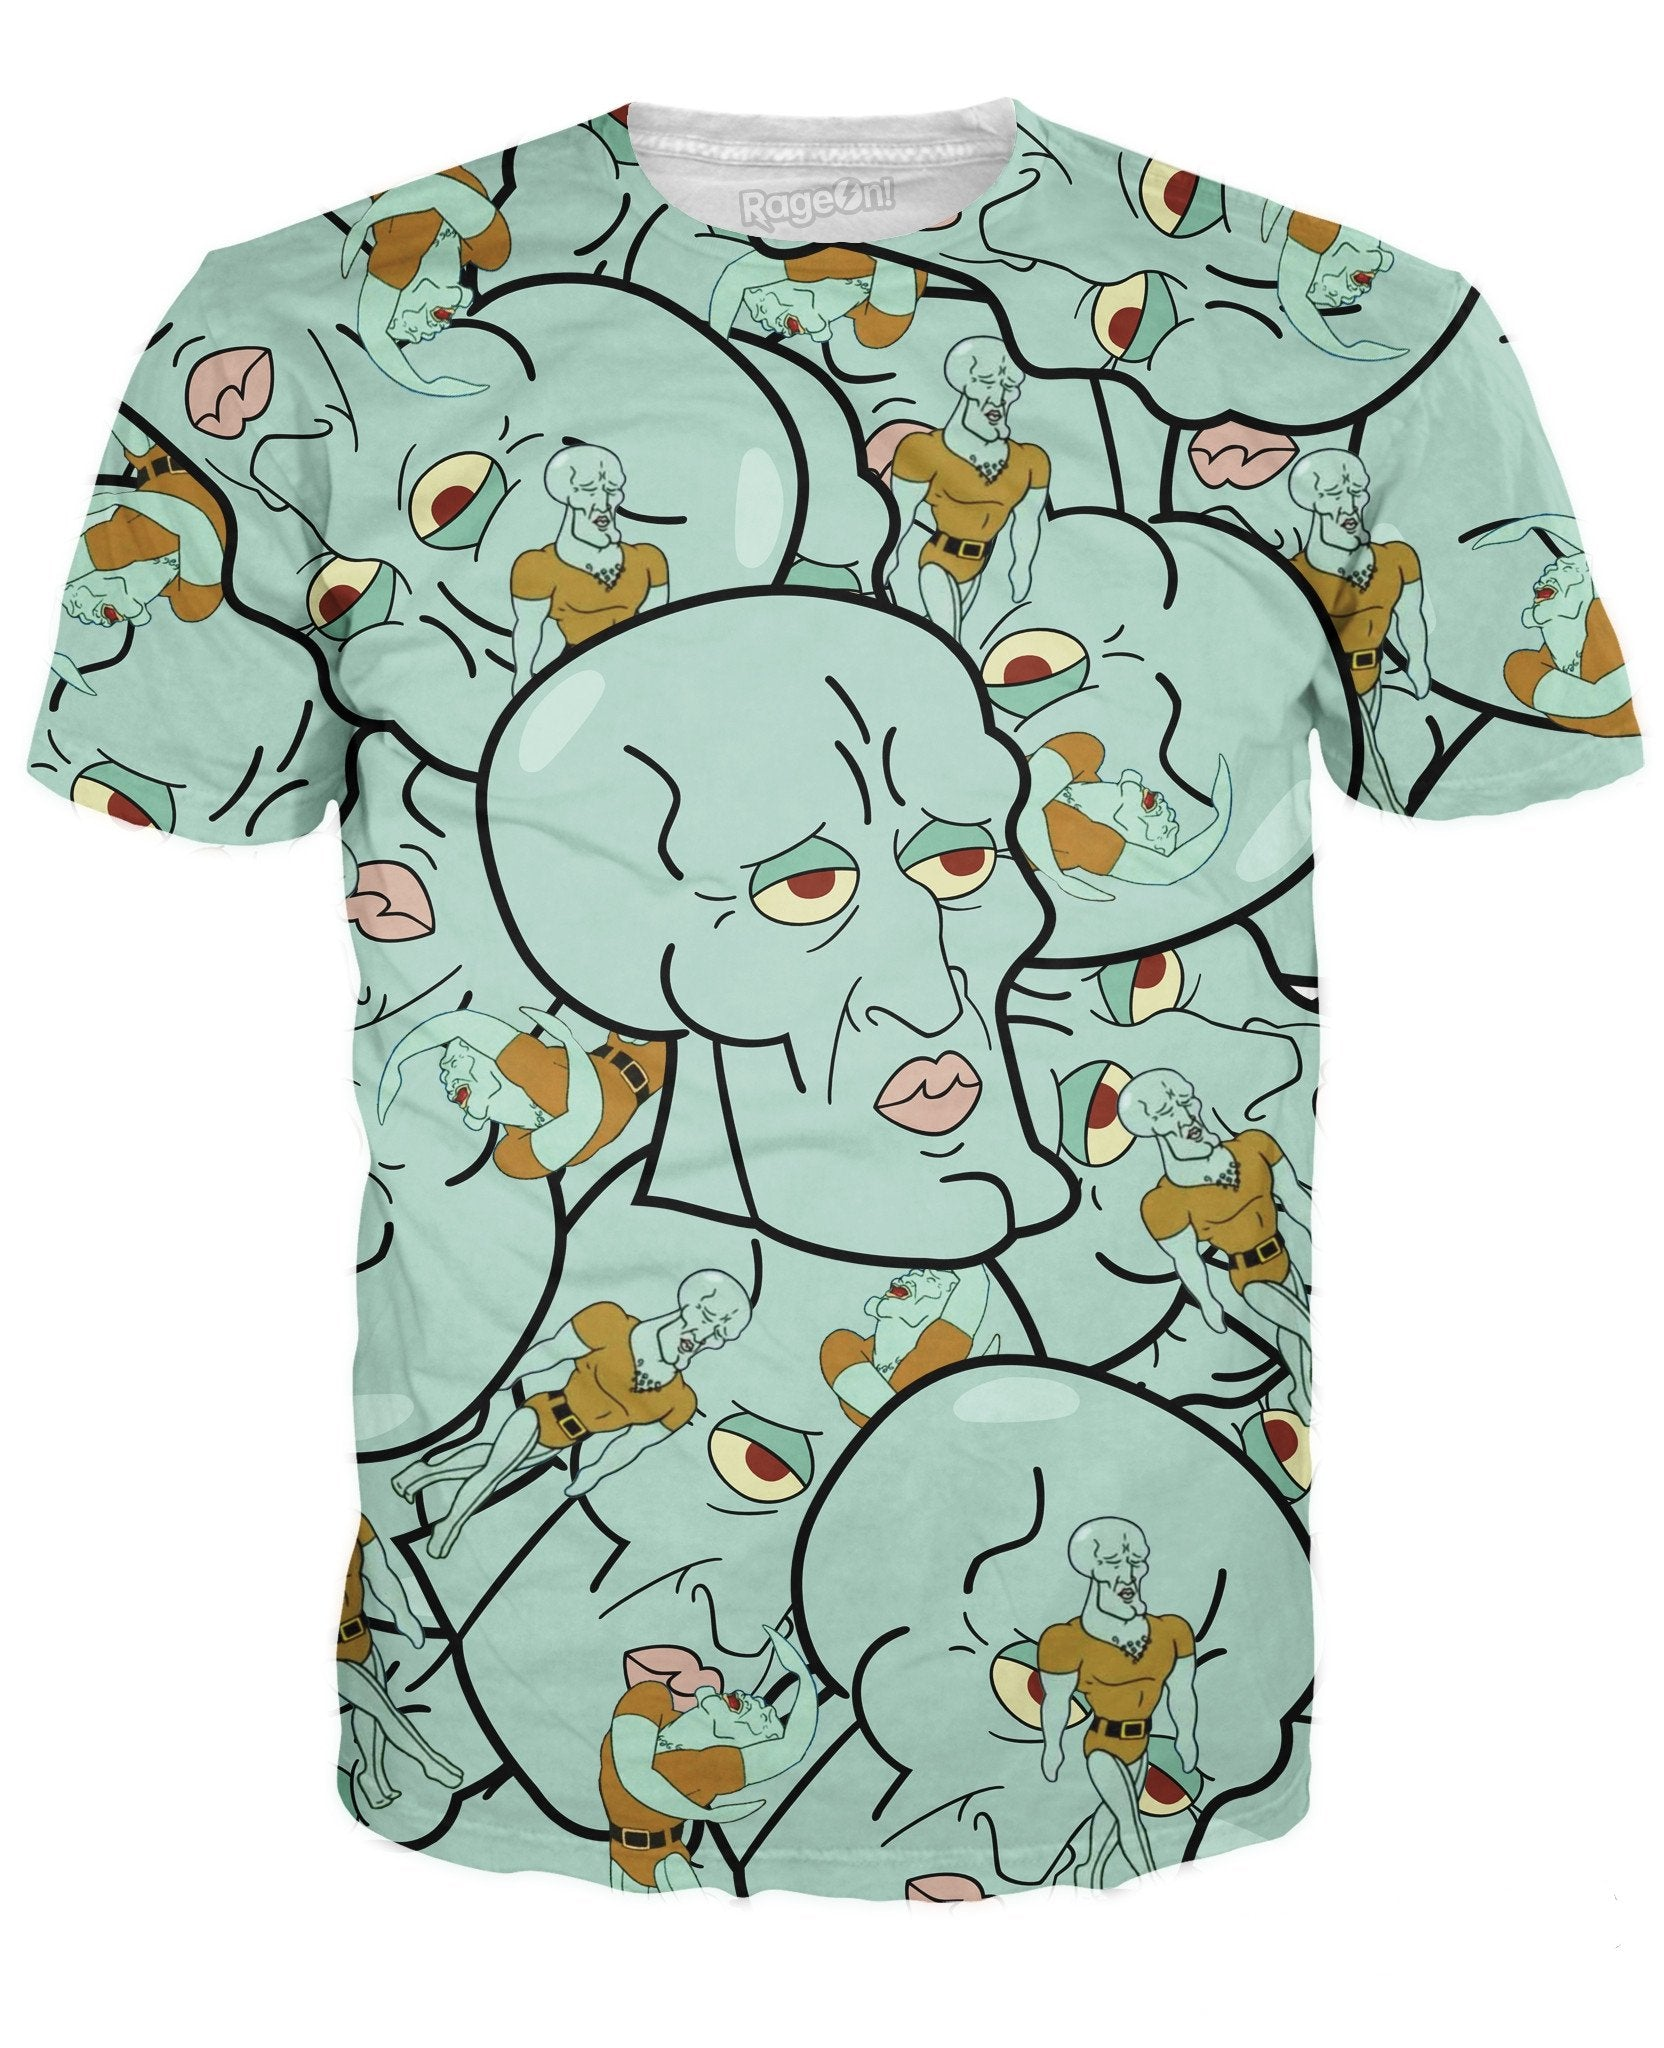 Handsome Squidward T-Shirt